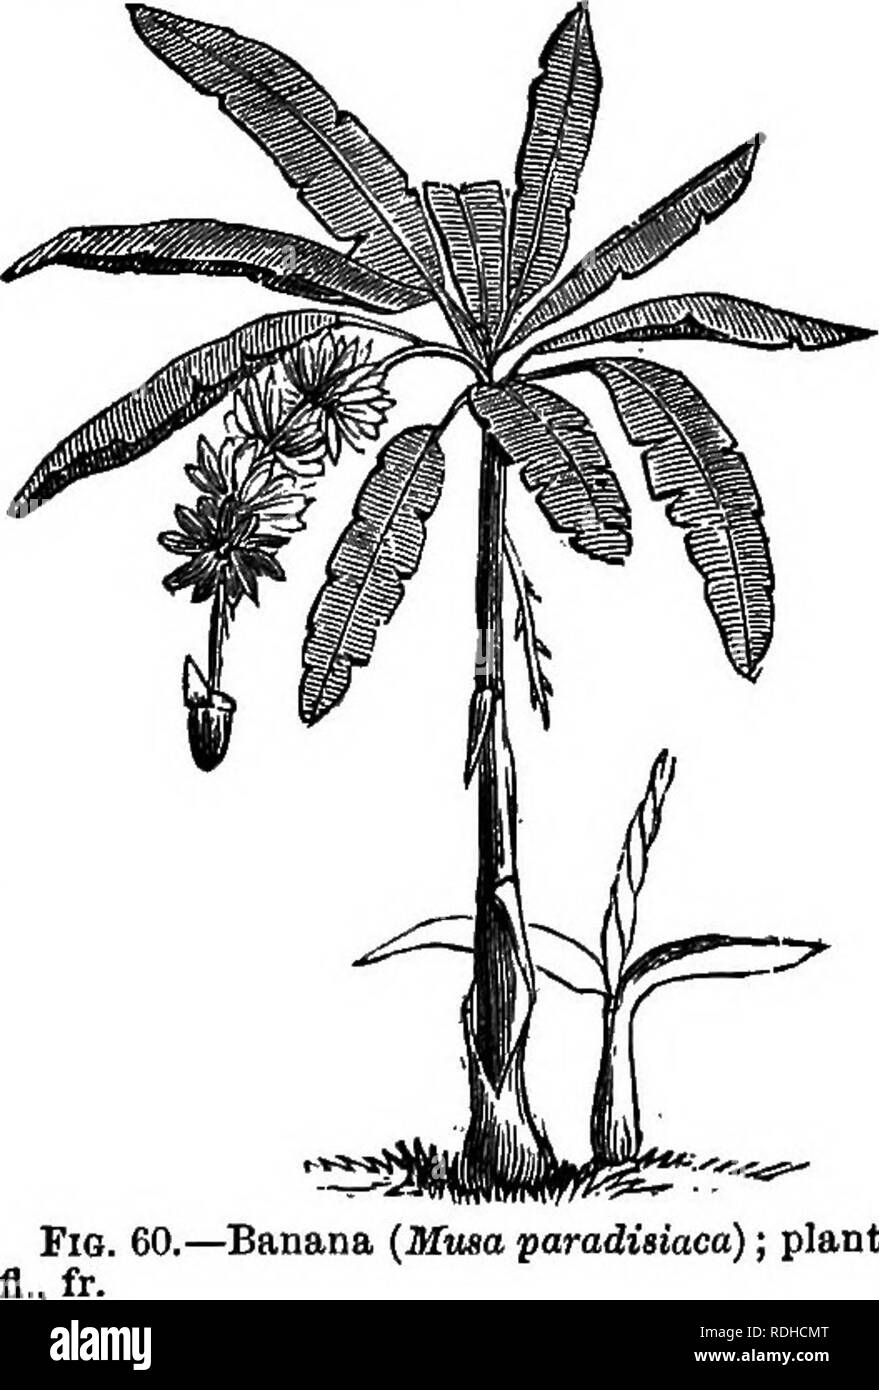 . Botany for academies and colleges: consisting of plant development and structure from seaweed to clematis. Botany; 1889. 54 ACADEMIC BOTANY. 161) and the Canna (Fig. 63, C). 90. Endogenous Growth. —The embryo governs the leaf and stem (32). In Endogens the embryo has one cotyledon, which sheathes the plumule. The plants therefore have alternate, sheathing, parallel - veined leaves; the veins run from base to tip, as in the Grasses (Fig. 51), or from midrib to margin, as in the Banana (Fig. 60). Sometimes the leaves are net-veined, as in the Yam (Fig. 89) and Smilax (Fig. 241); but the net-ve - Stock Image